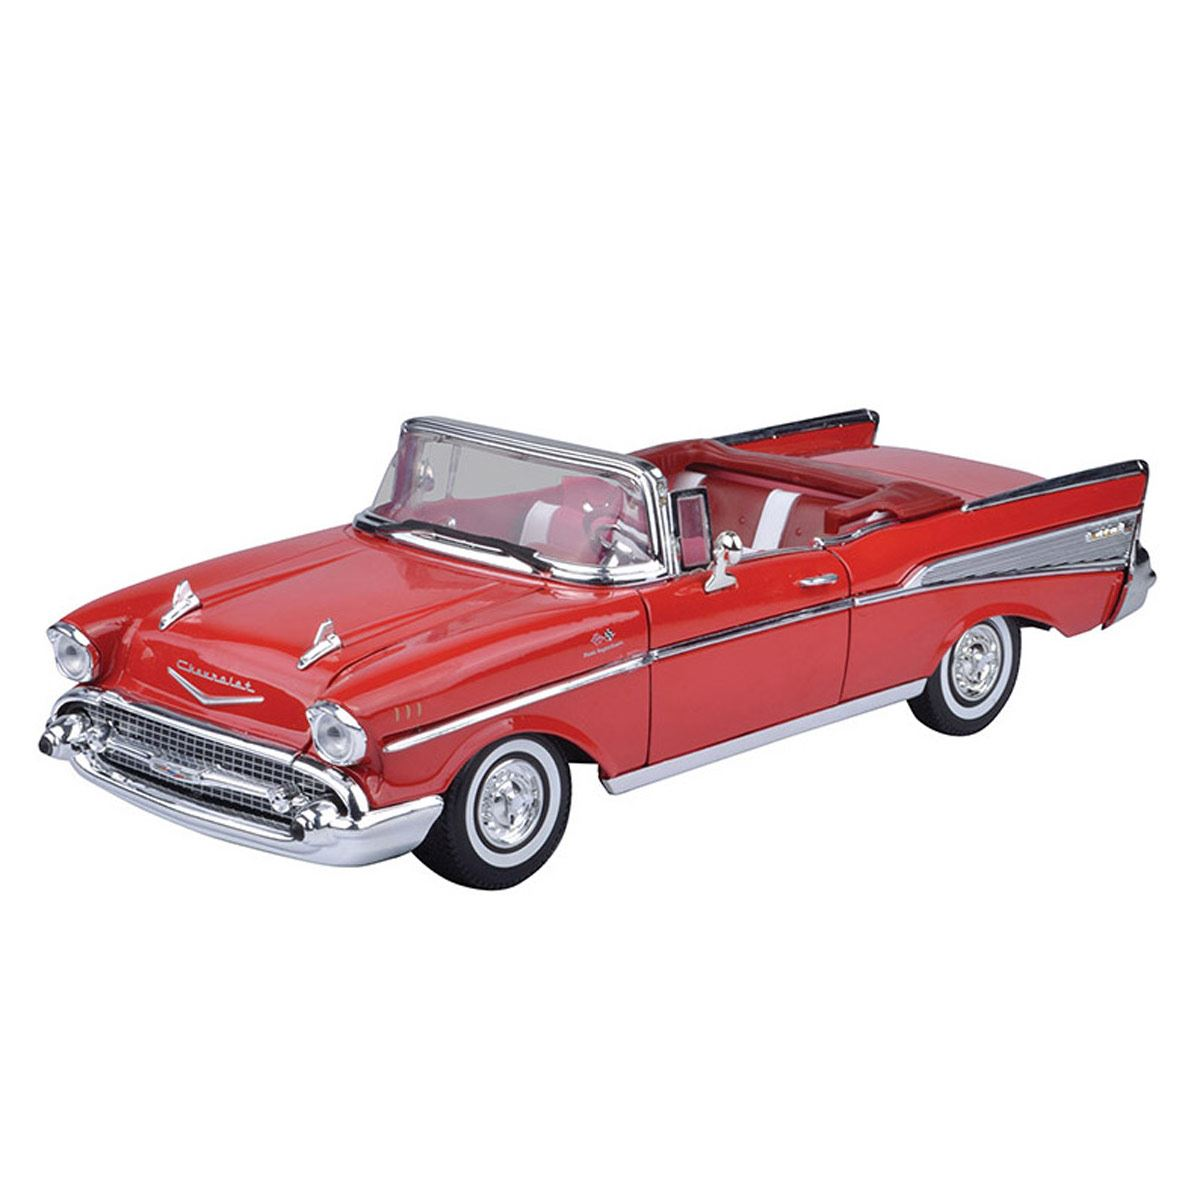 Custom Classics-1957 Chevy Bel Air esc 1:18